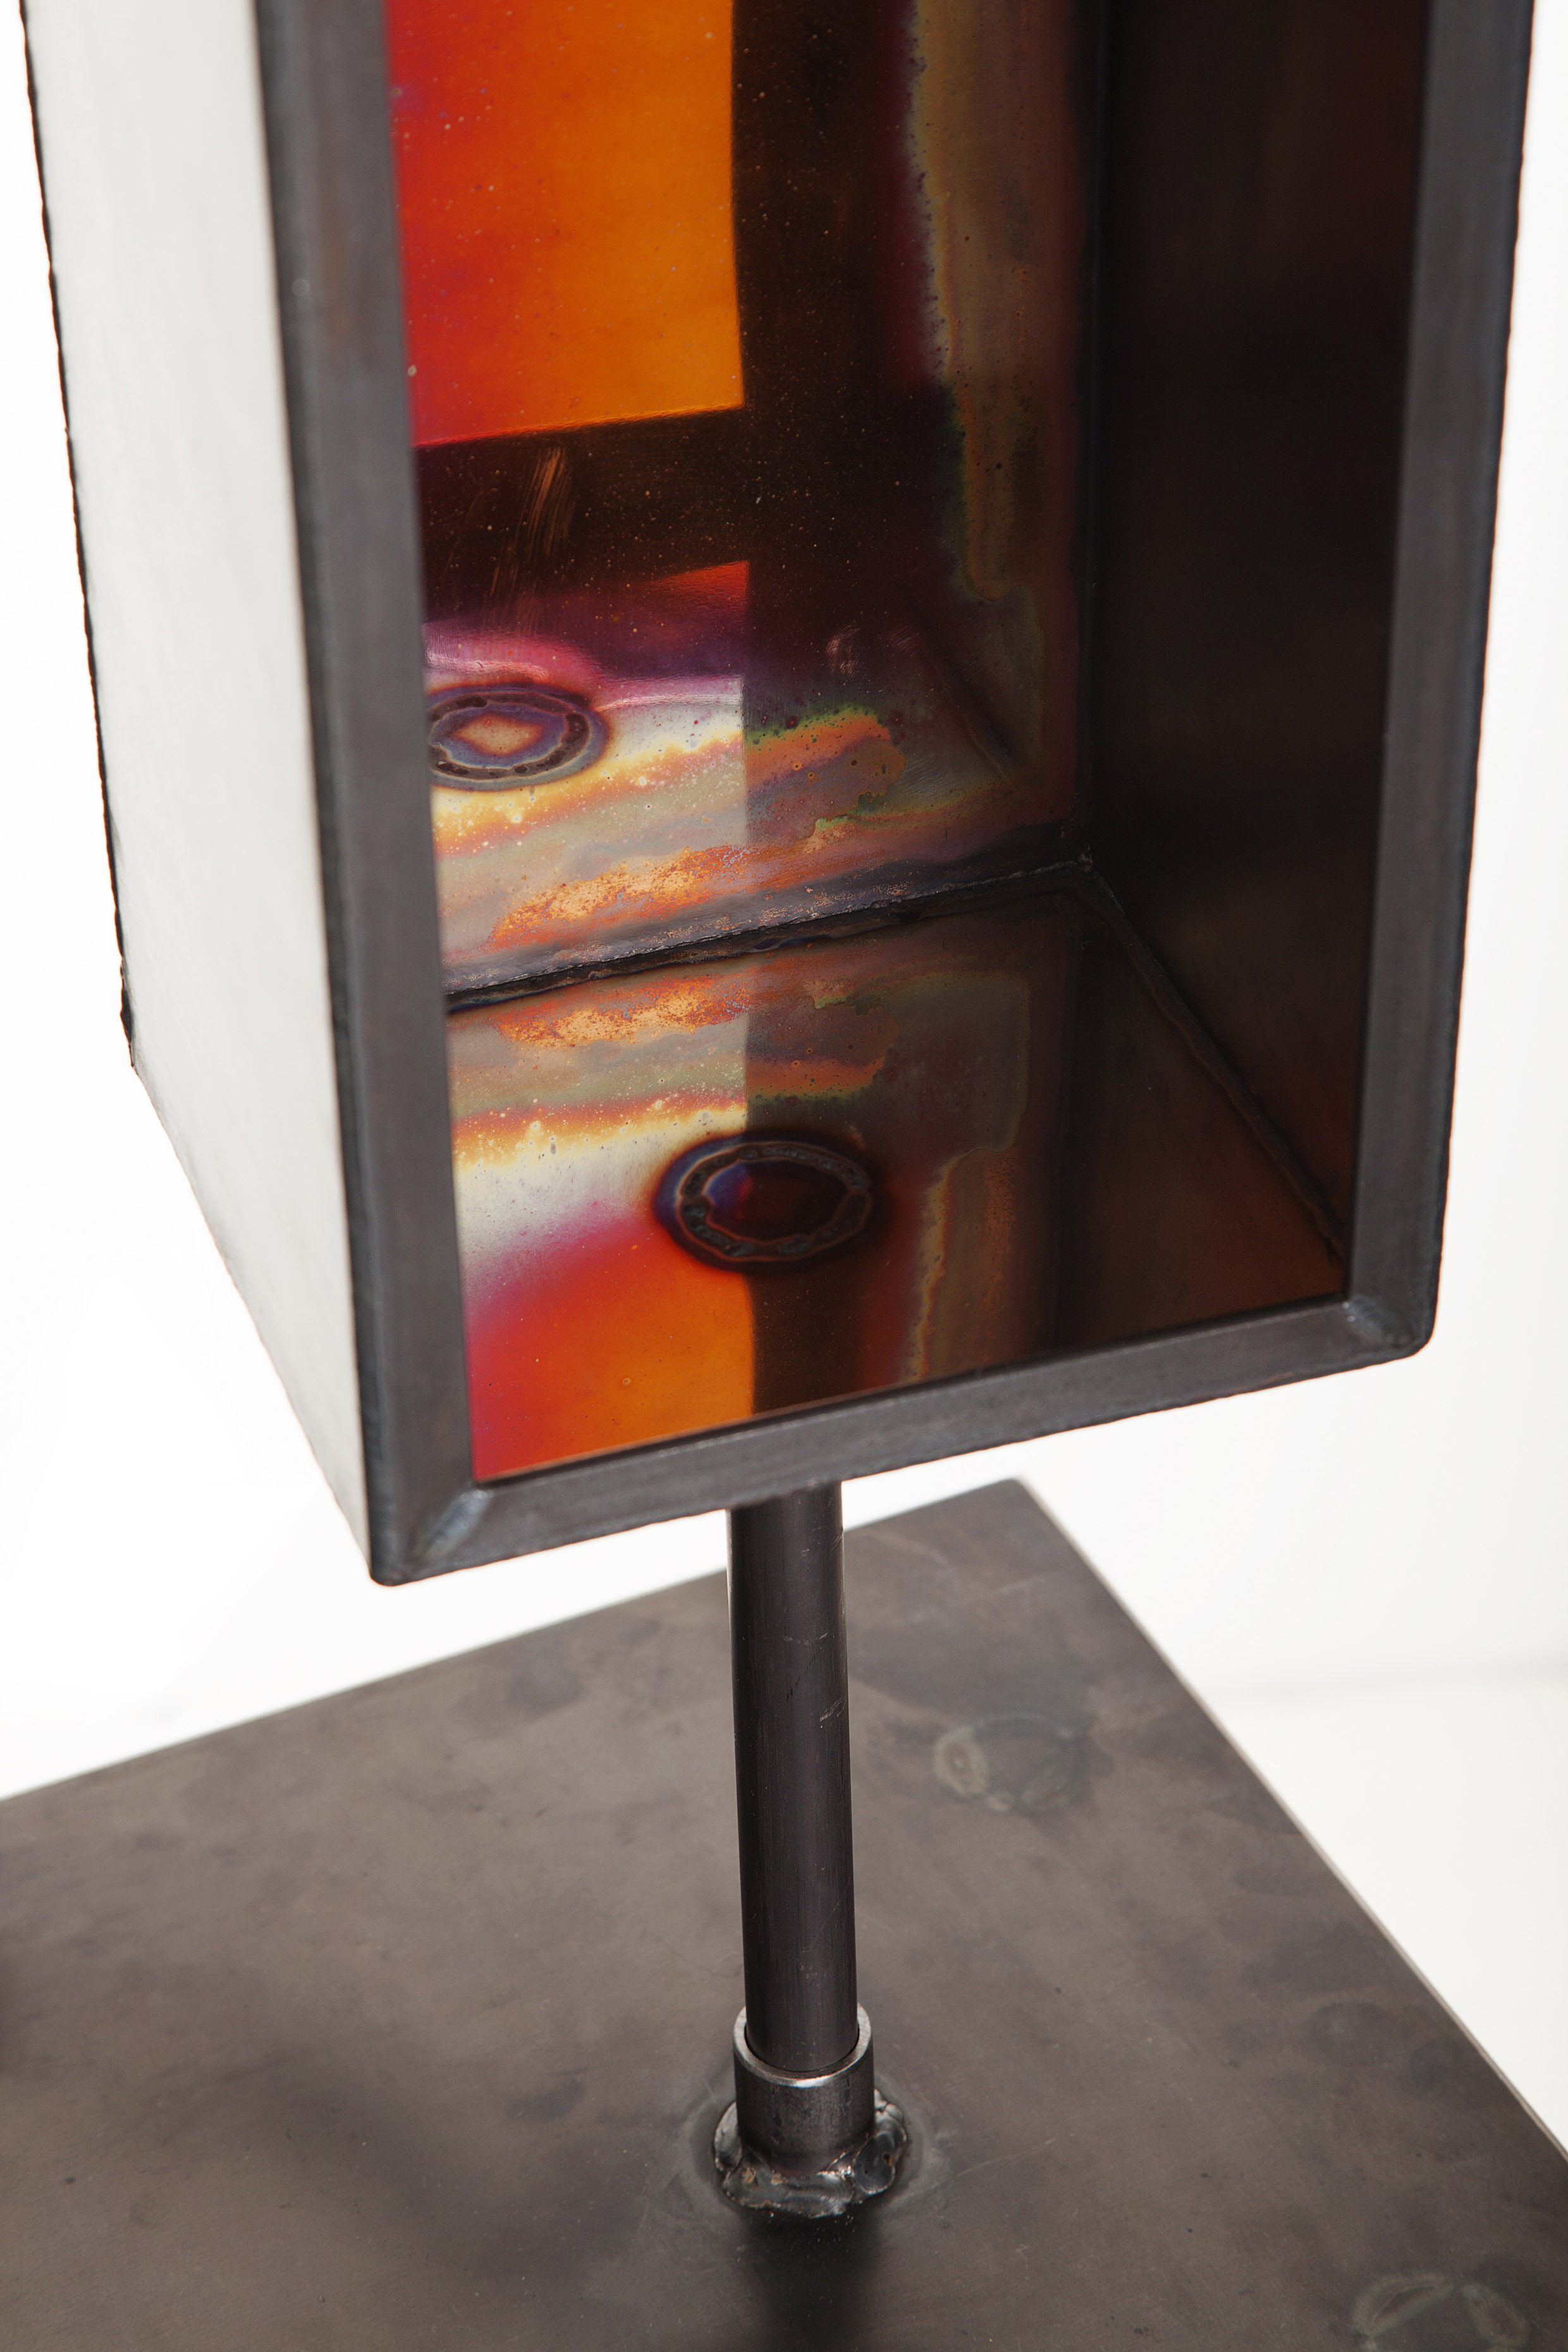 The welding of two different metals–copper and steel-creates flares of warmth and color. Metal Cupboard, by Michiel Poelmann